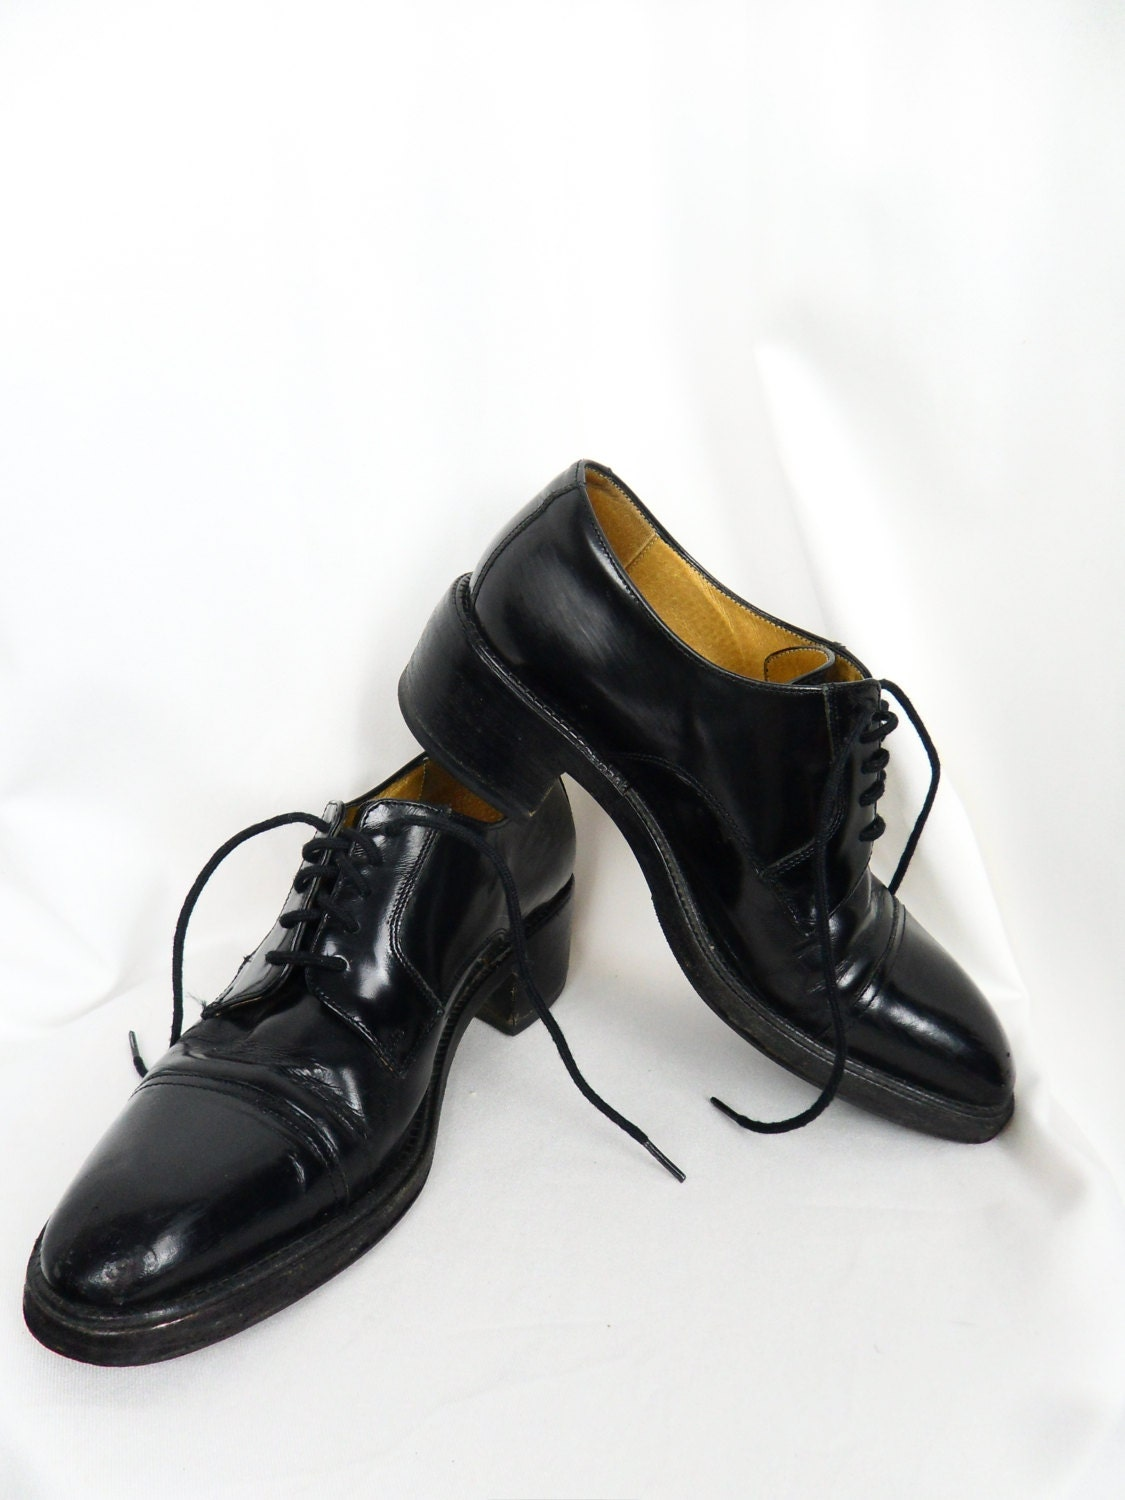 80s Sartore Paris black leather lace up oxfords/ made in France/ womens/ grunge hipster: size EU37/ US 6.5/ UK 4 - ModFashRedux